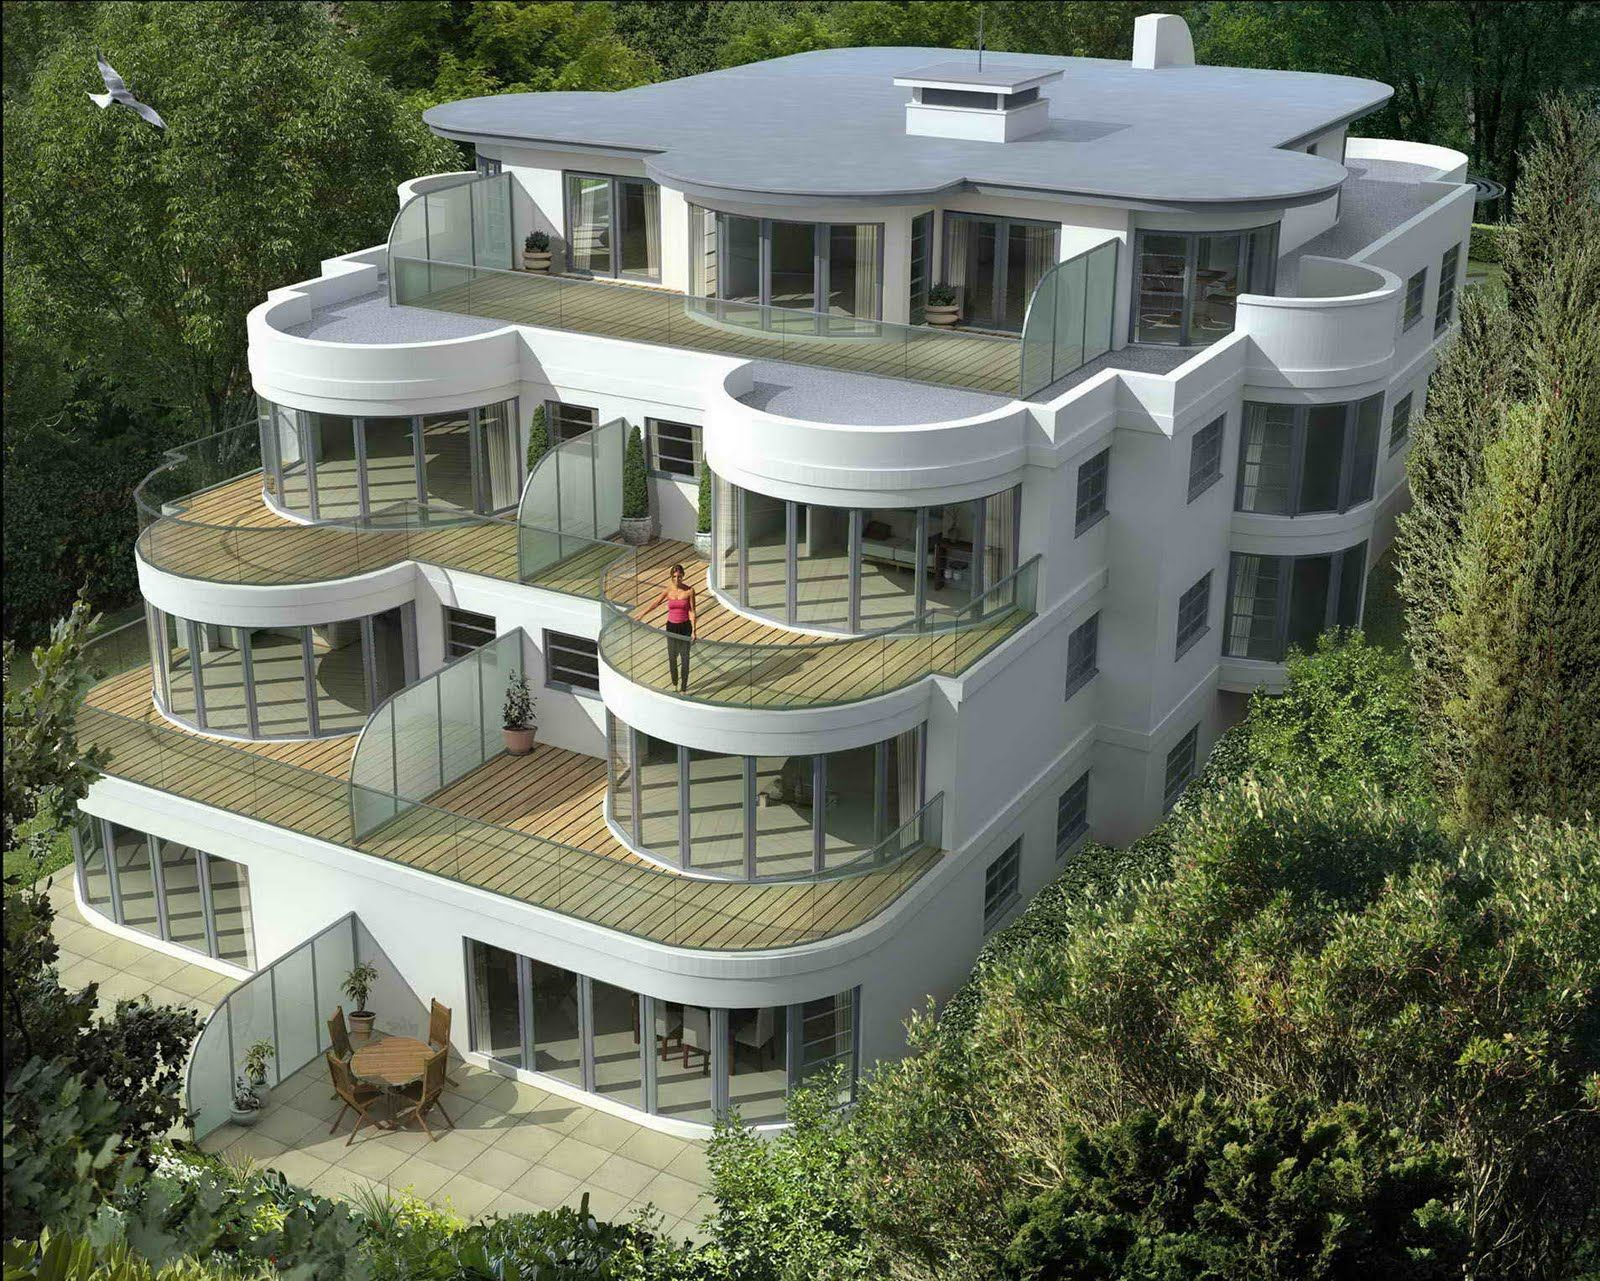 Top Arts Area Modern House Designs Dream Design Ideas Software Exterior 3d Nautical Home Decor